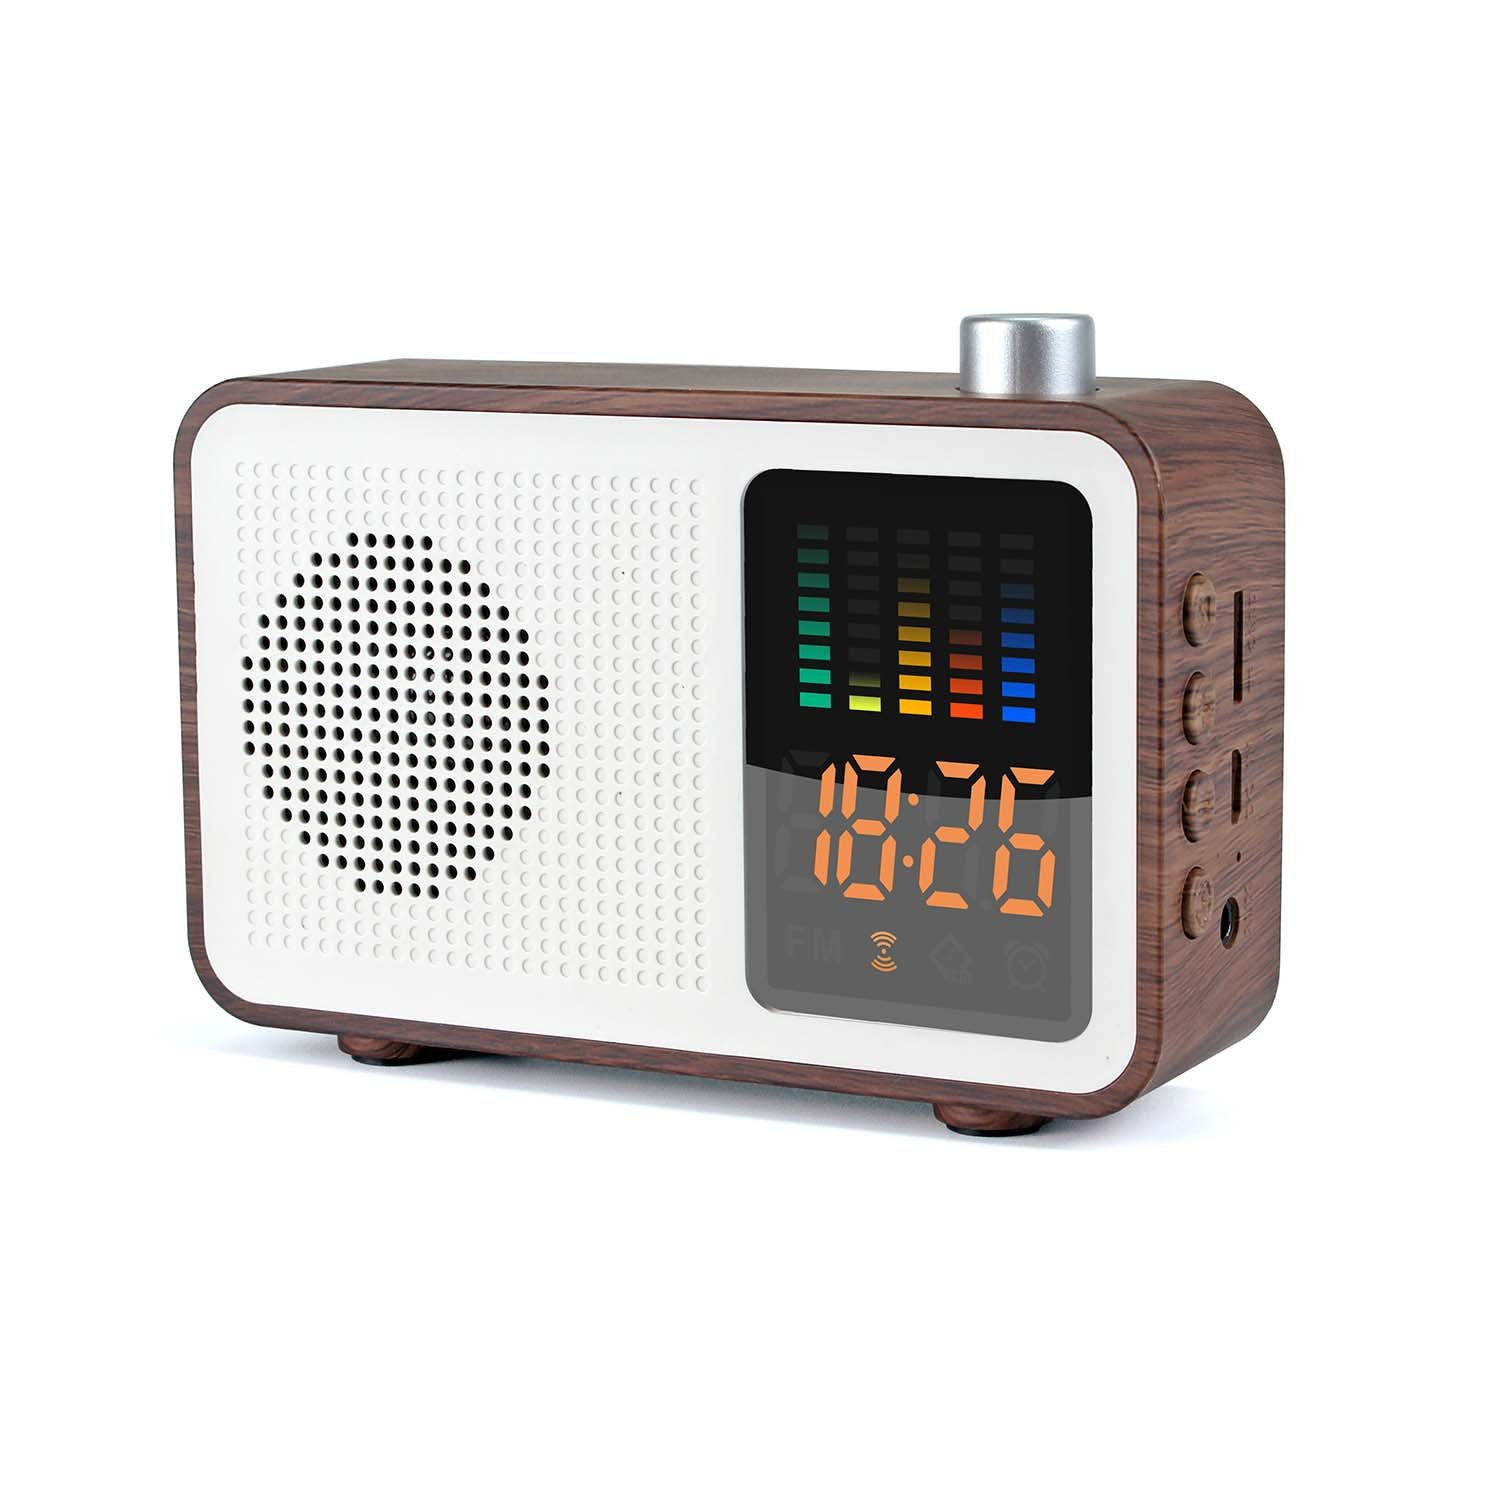 Miaboo Portable Bluetooth Speaker, Wooden Retro Stereo Wireless Speakers, FM Radio Digital Alarm Clock with TF Card/AUX-IN USB Charging Supported(Walnut Wood) by MIABOO